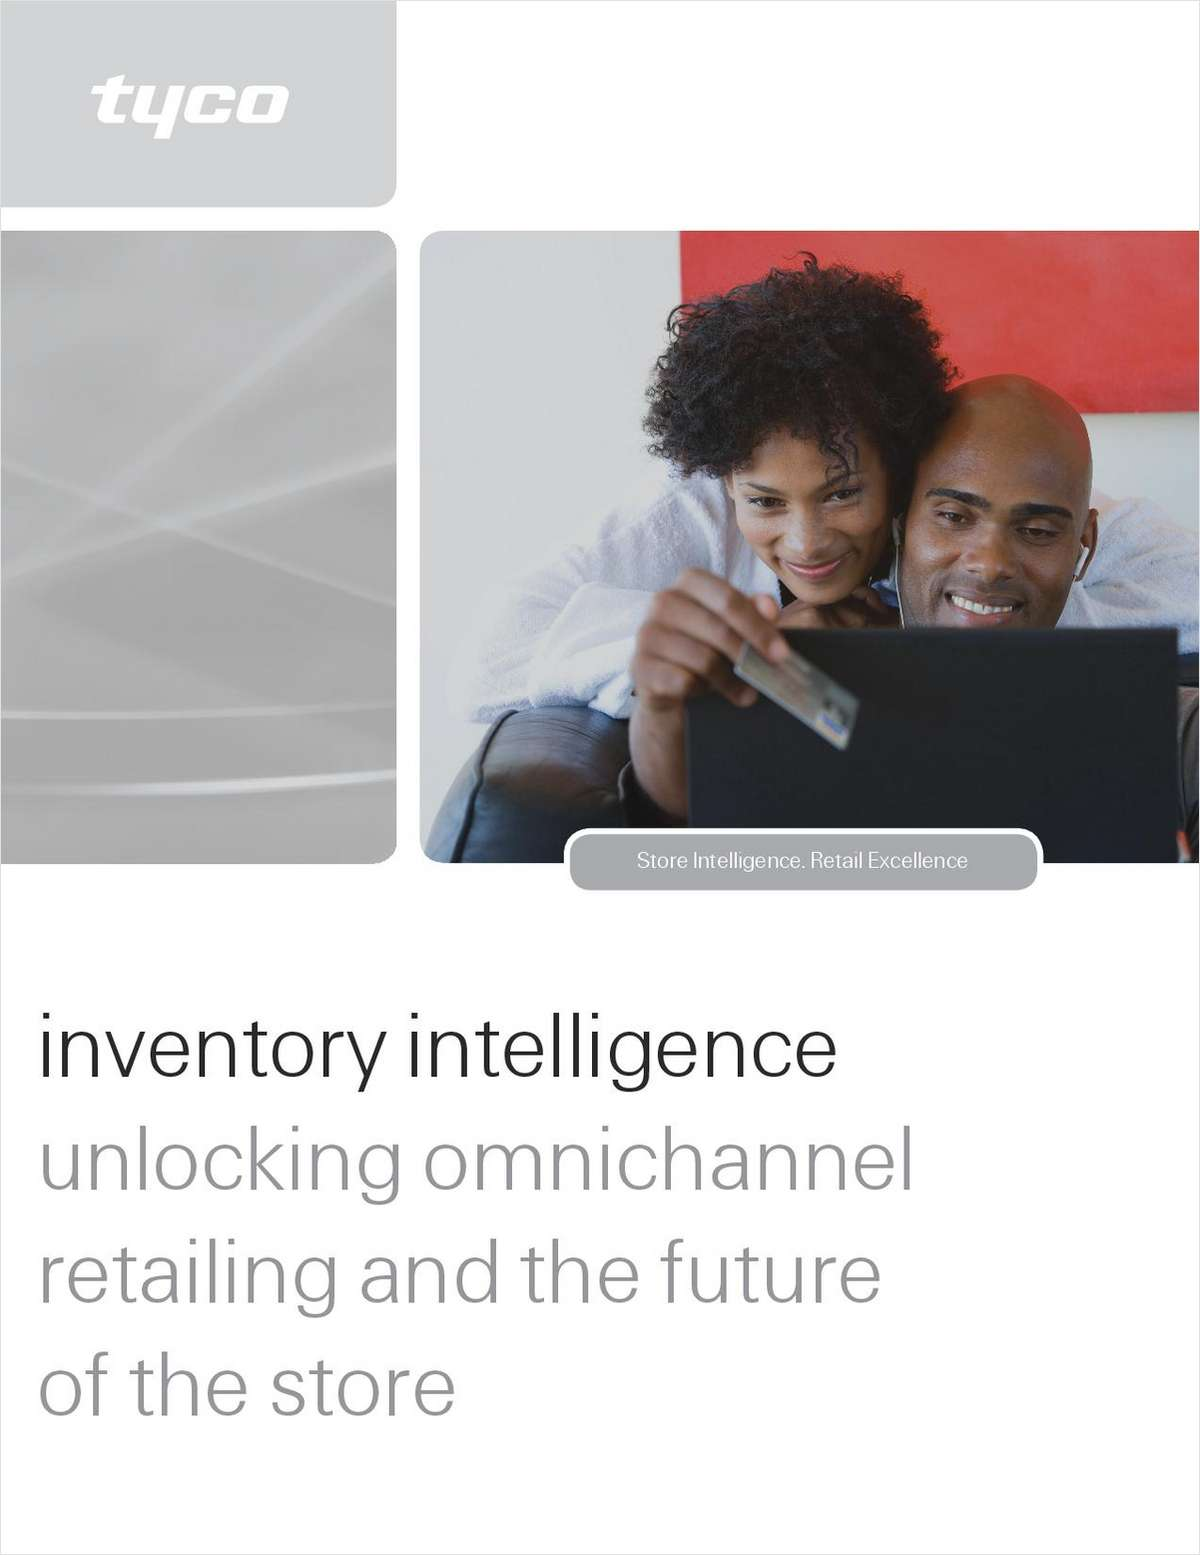 Inventory Intelligence: Unlocking Omnichannel Retailing and the Future of the Store